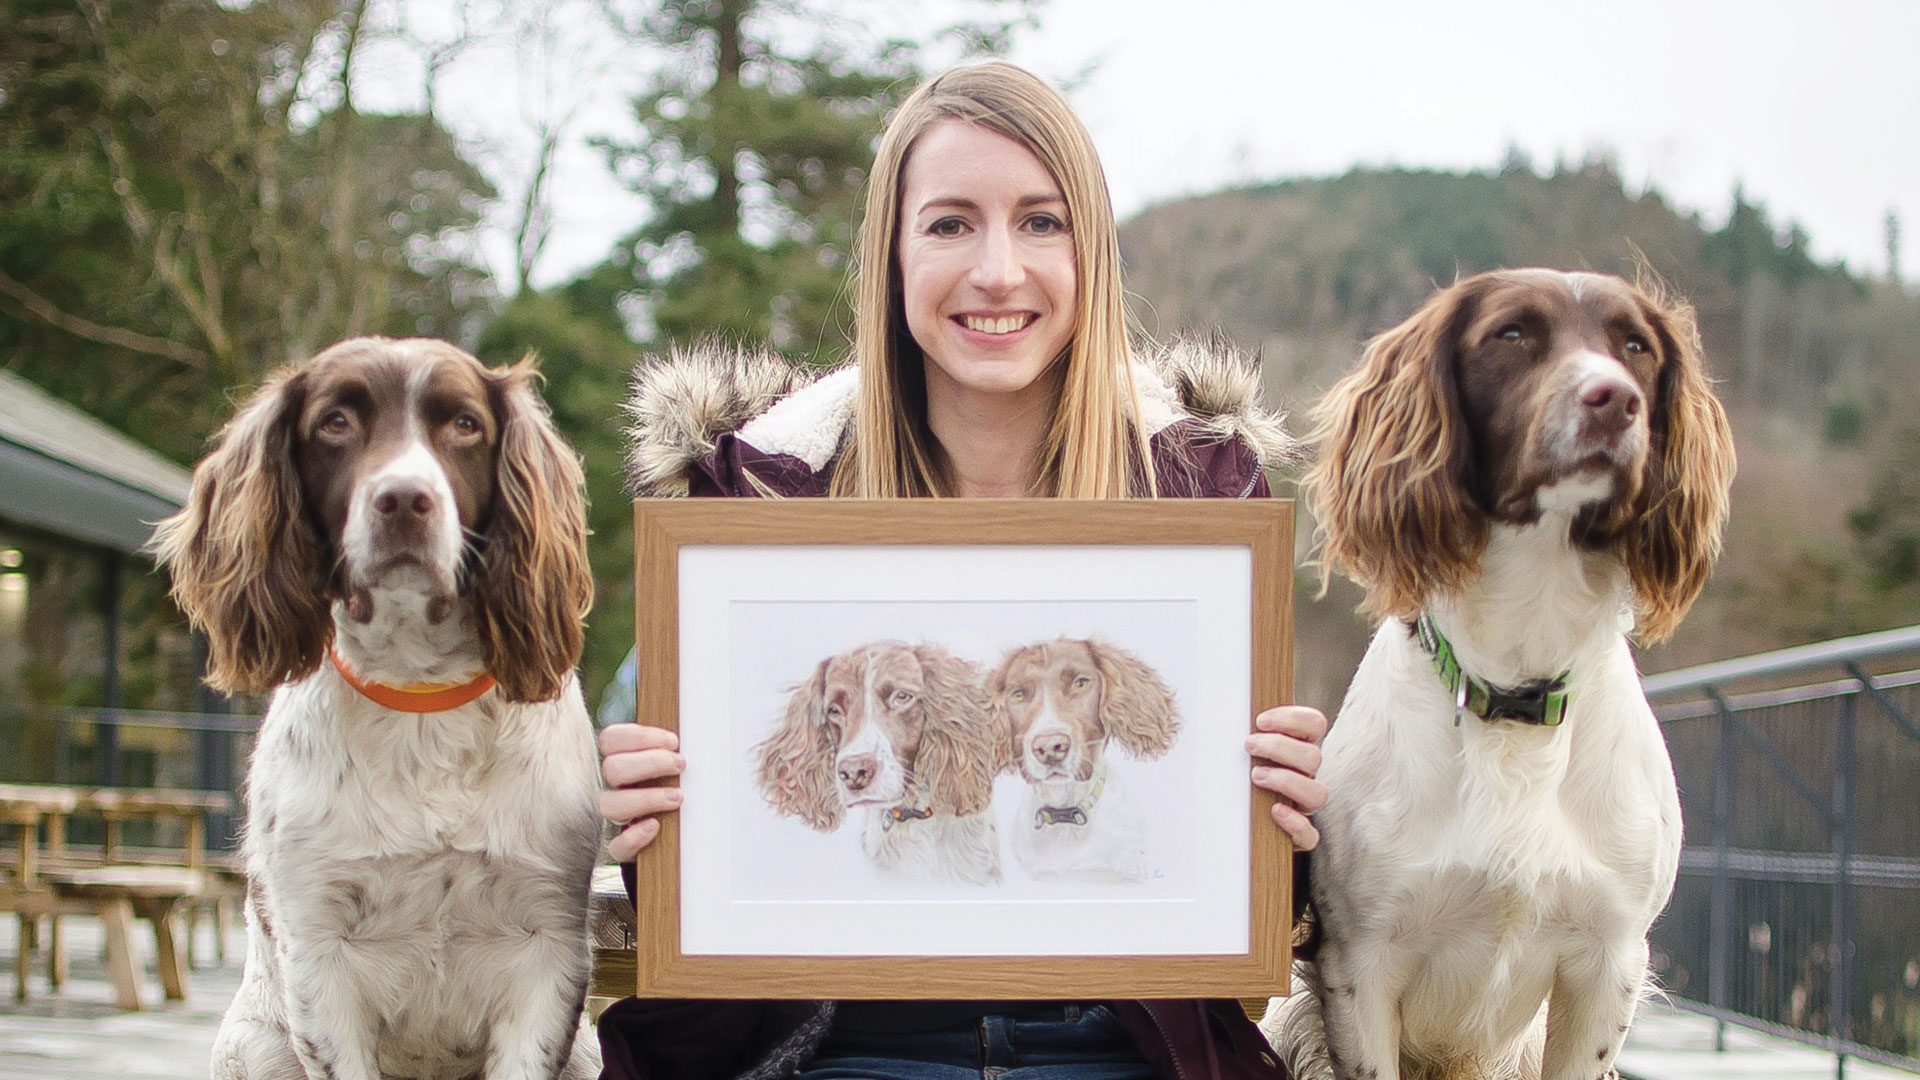 Jess Pritchard, sat between Max & Paddy holding the portrait she drew of them